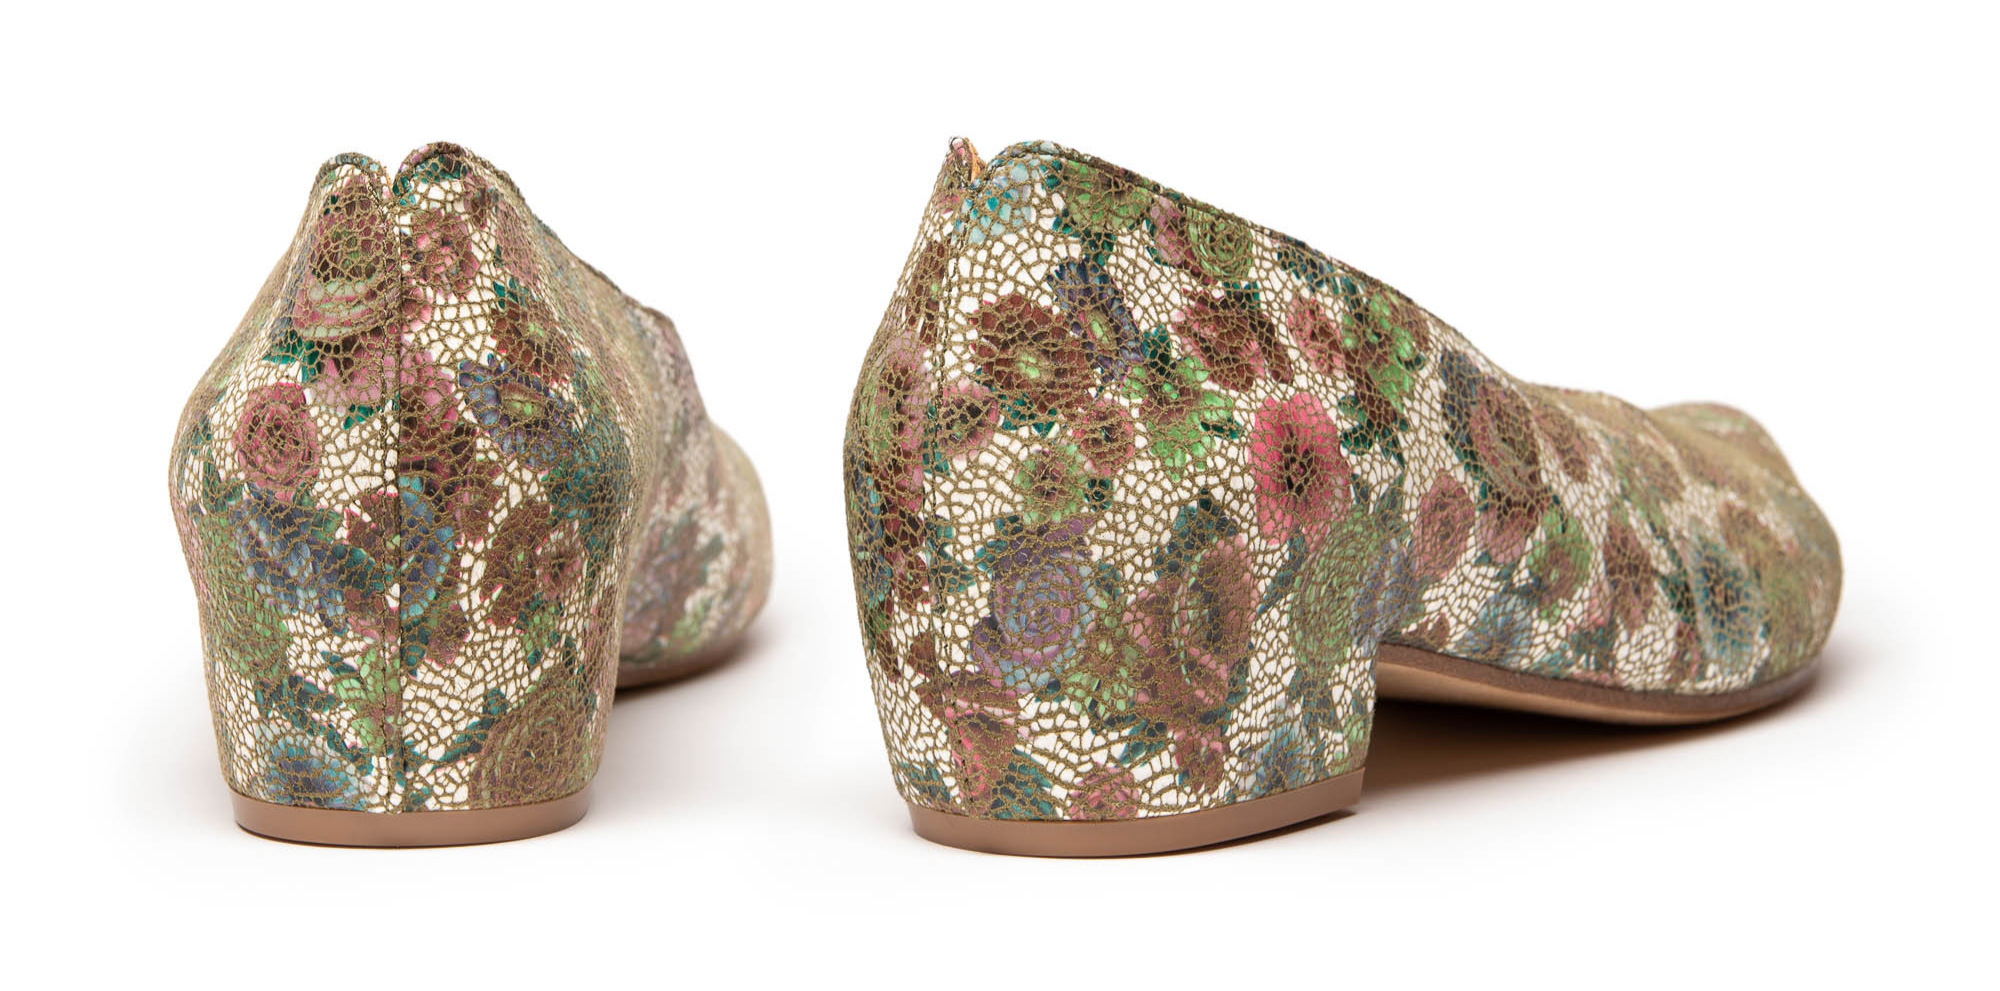 Keiran Wildflower mid heel shoes in luxury leather Tracey Neuls